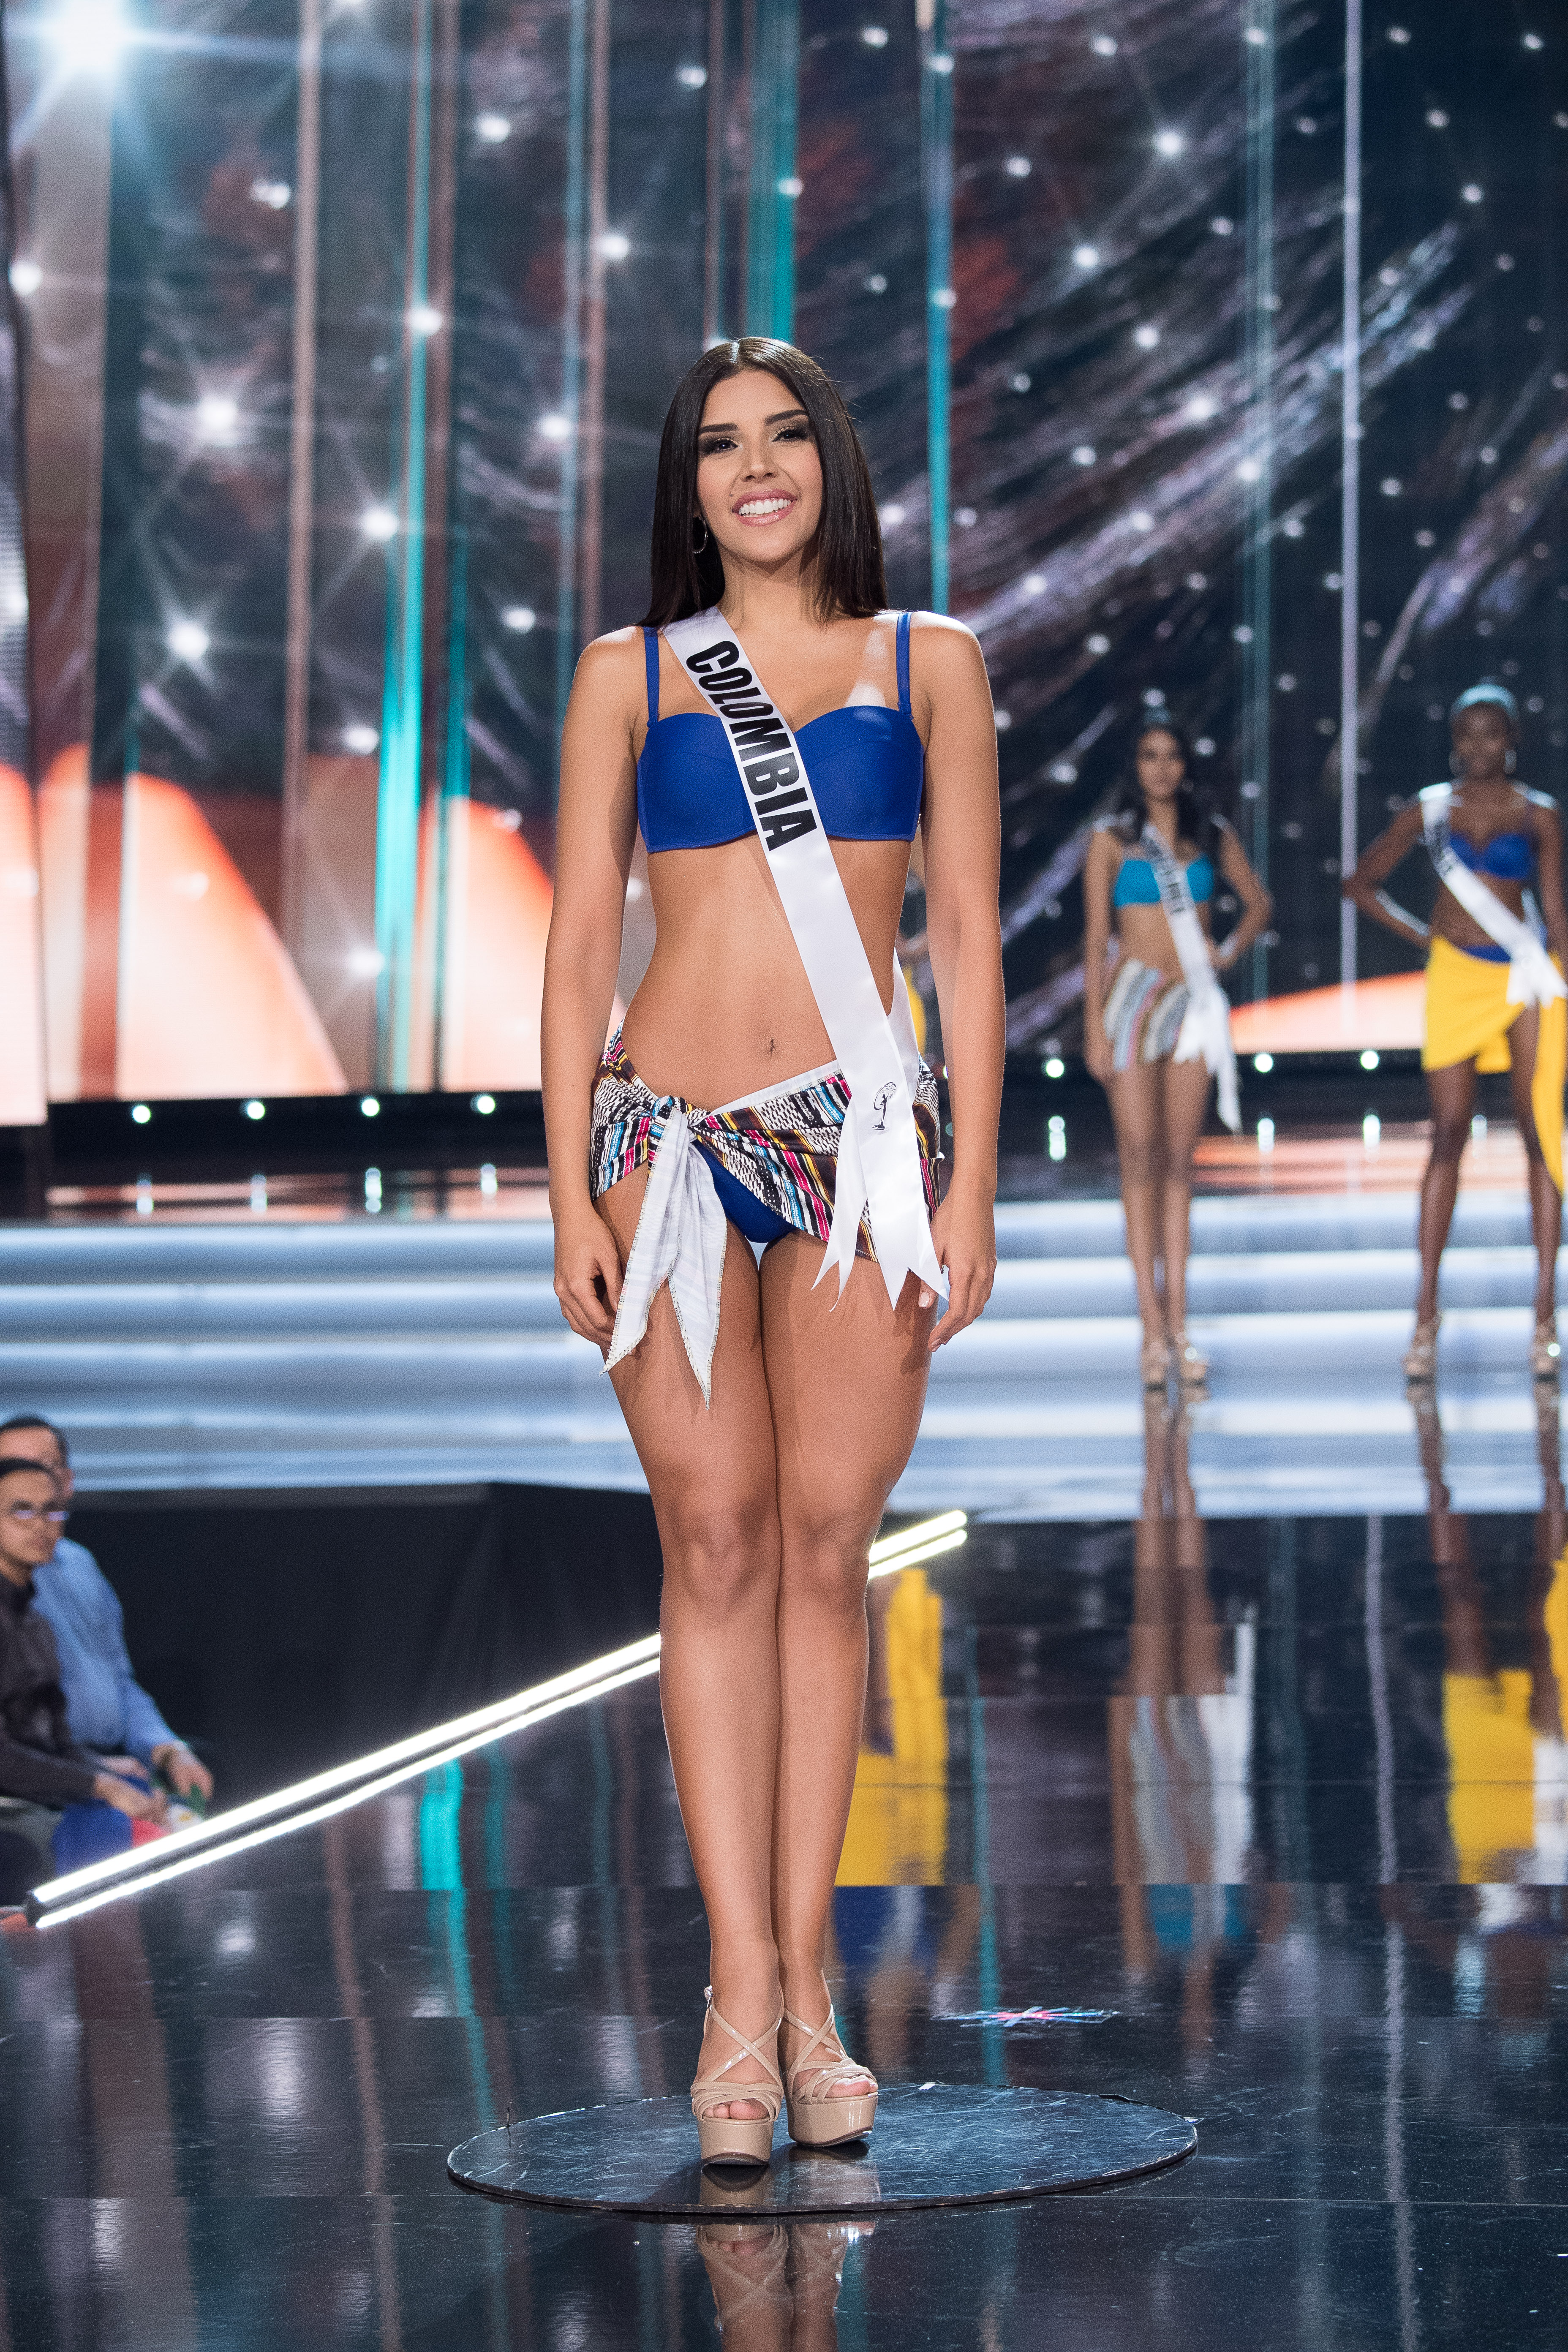 a7ba1ccb2b6b4 The highs and lows at Miss Universe 2017